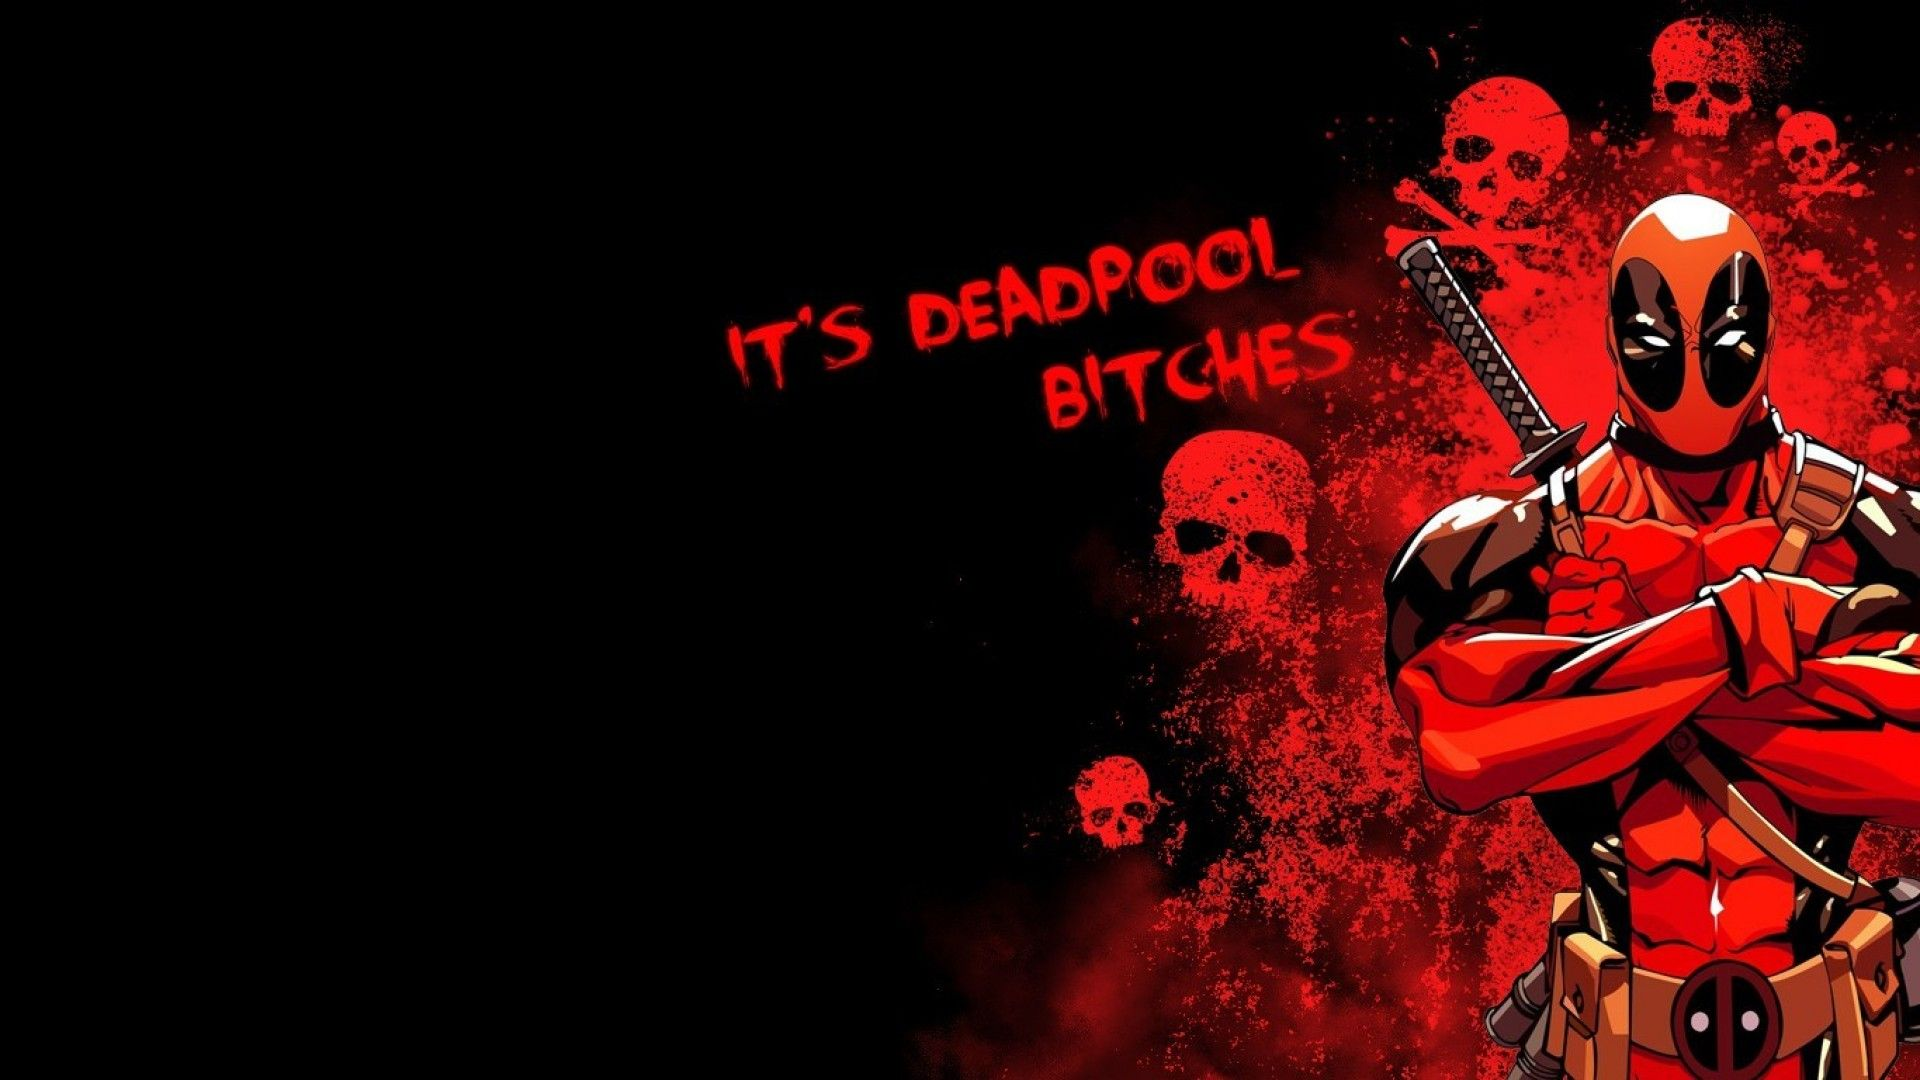 Wonderful Wallpaper Deadpool Xbox One - 8ce667a326902916a82d10dea3b3fba7  You Should Have_51210 .jpg